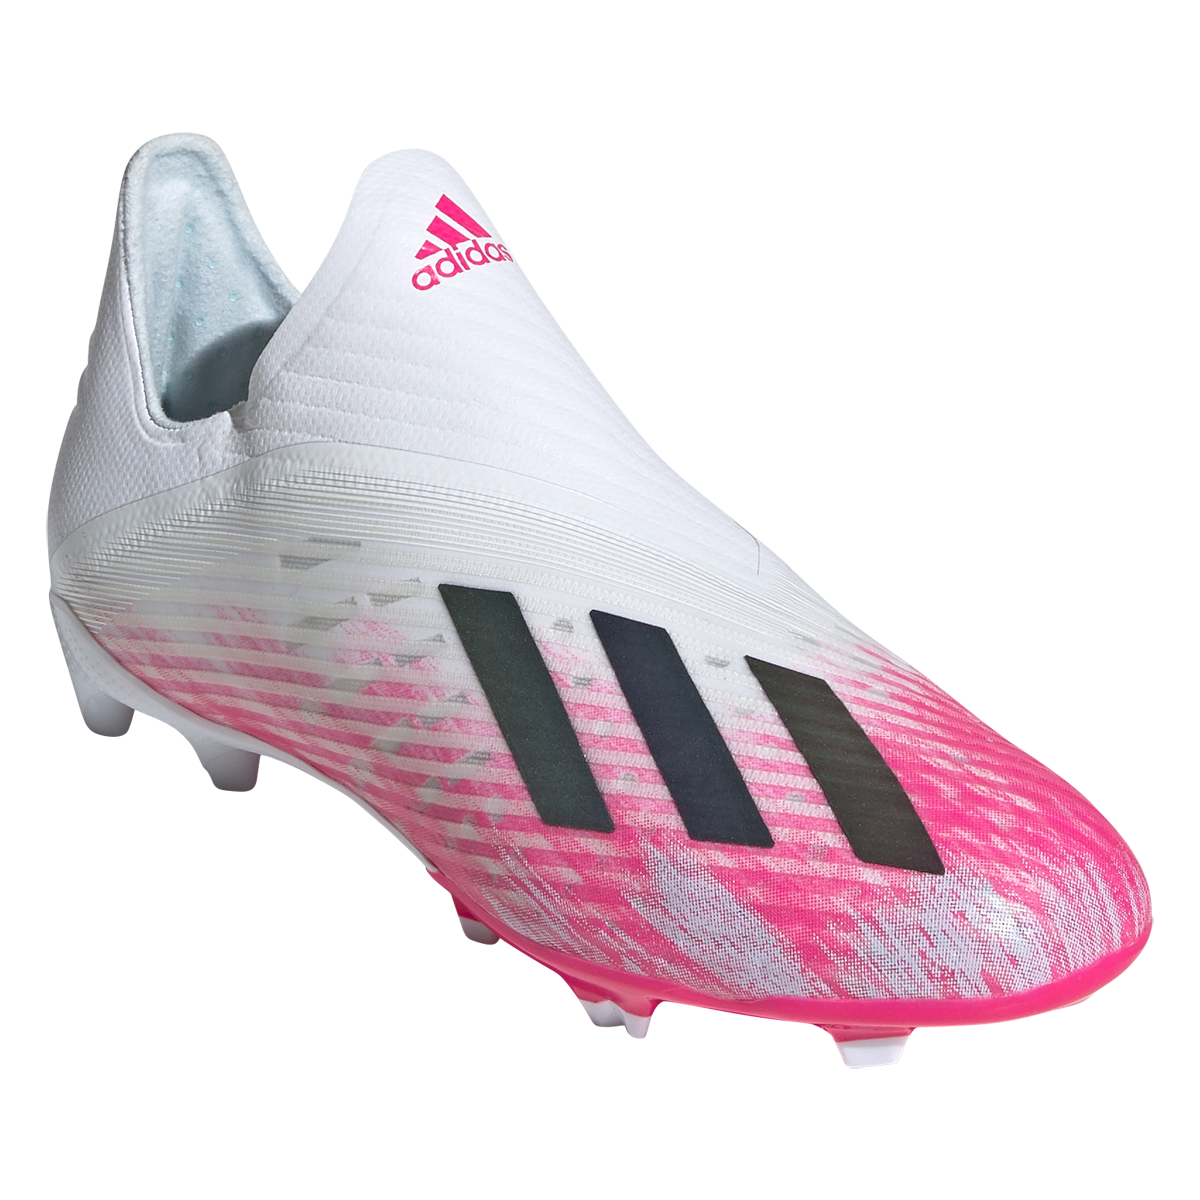 Adidas X 19 Fg Junior Soccer Cleats White Core Black Shock Pink 2 In 2020 Pink Soccer Cleats Soccer Cleats Cleats